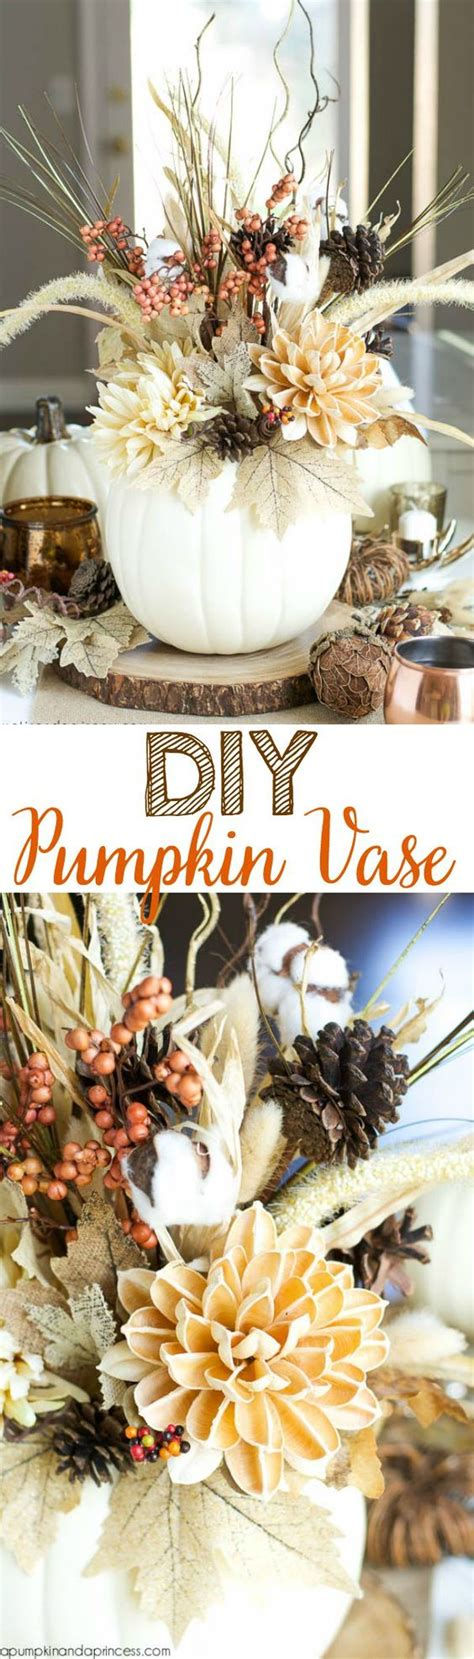 home made fall decorations 30 beautiful rustic decorations for fall that are easy to make 2017